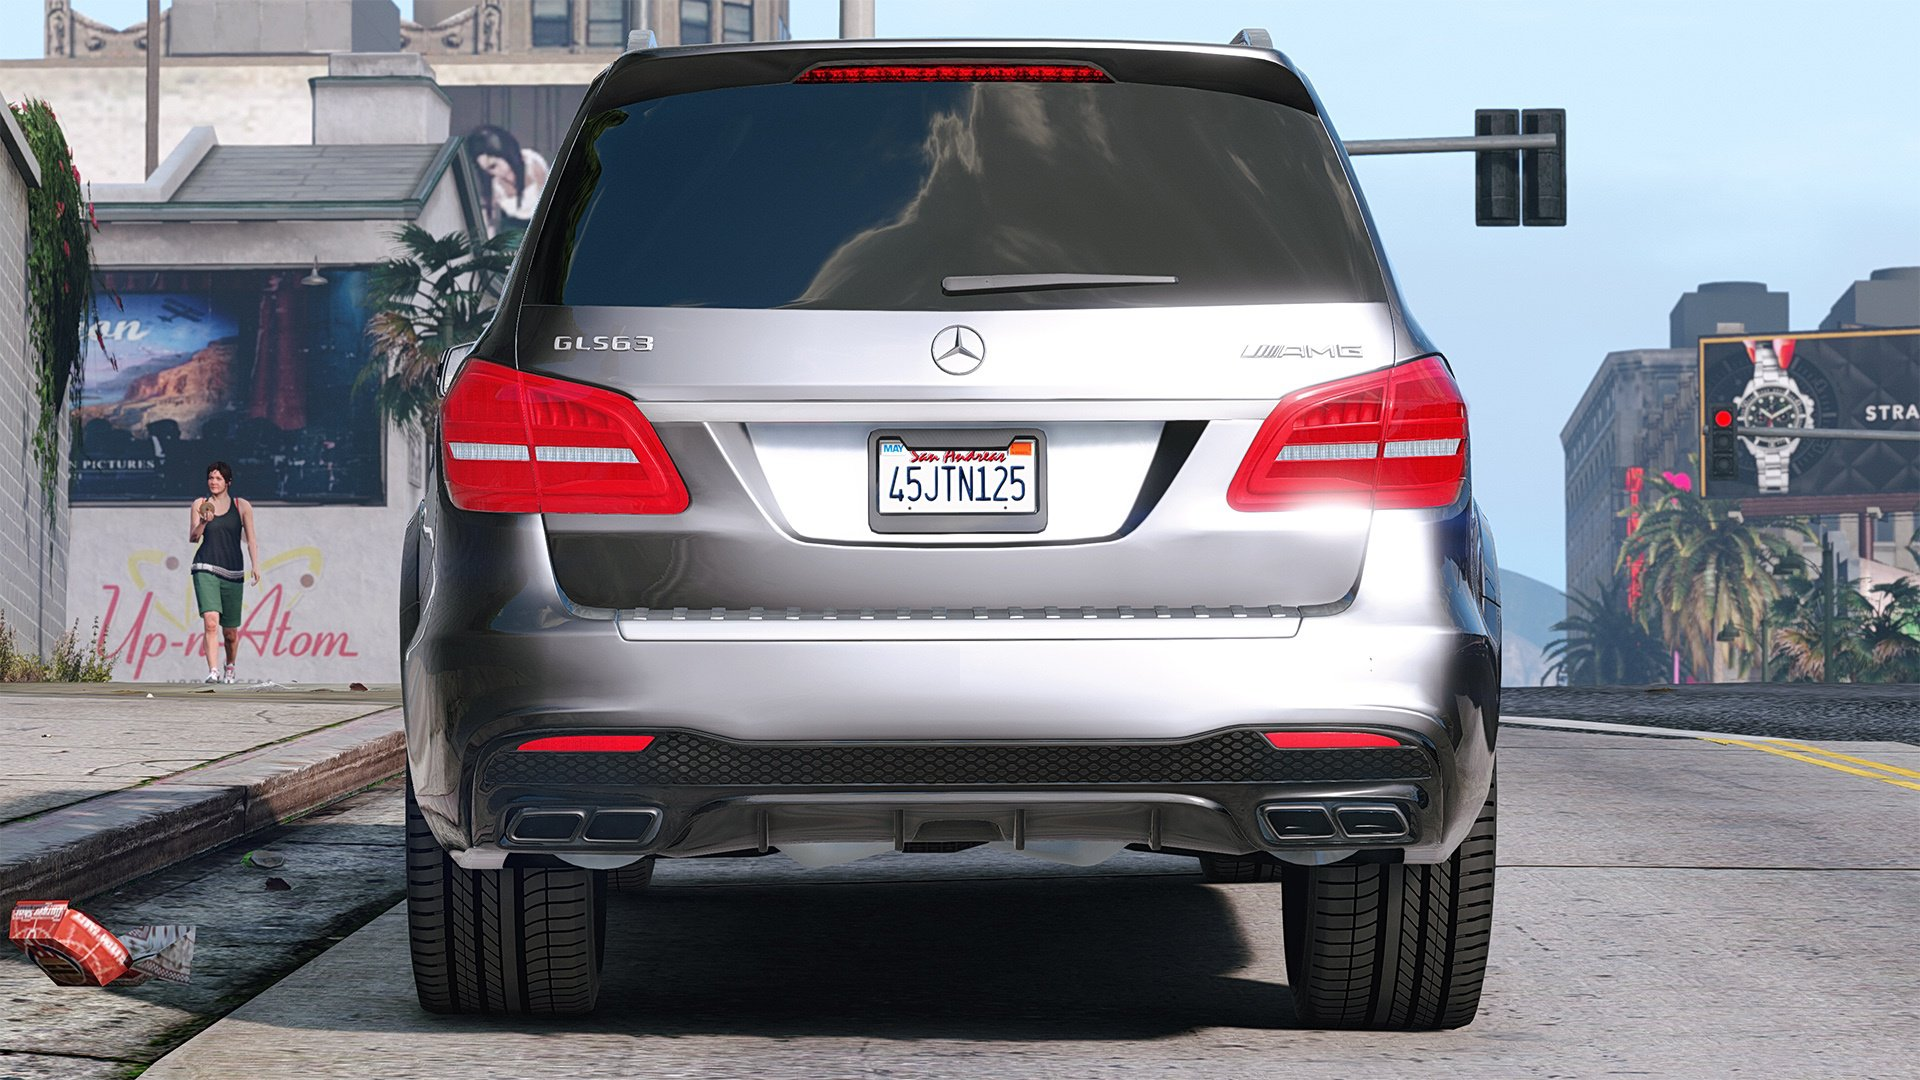 Mercedes Benz Gls >> Mercedes-Benz GLS 63 AMG 2015 [Add-On / Replace | Animated] - Vehicules pour GTA V sur GTA Modding